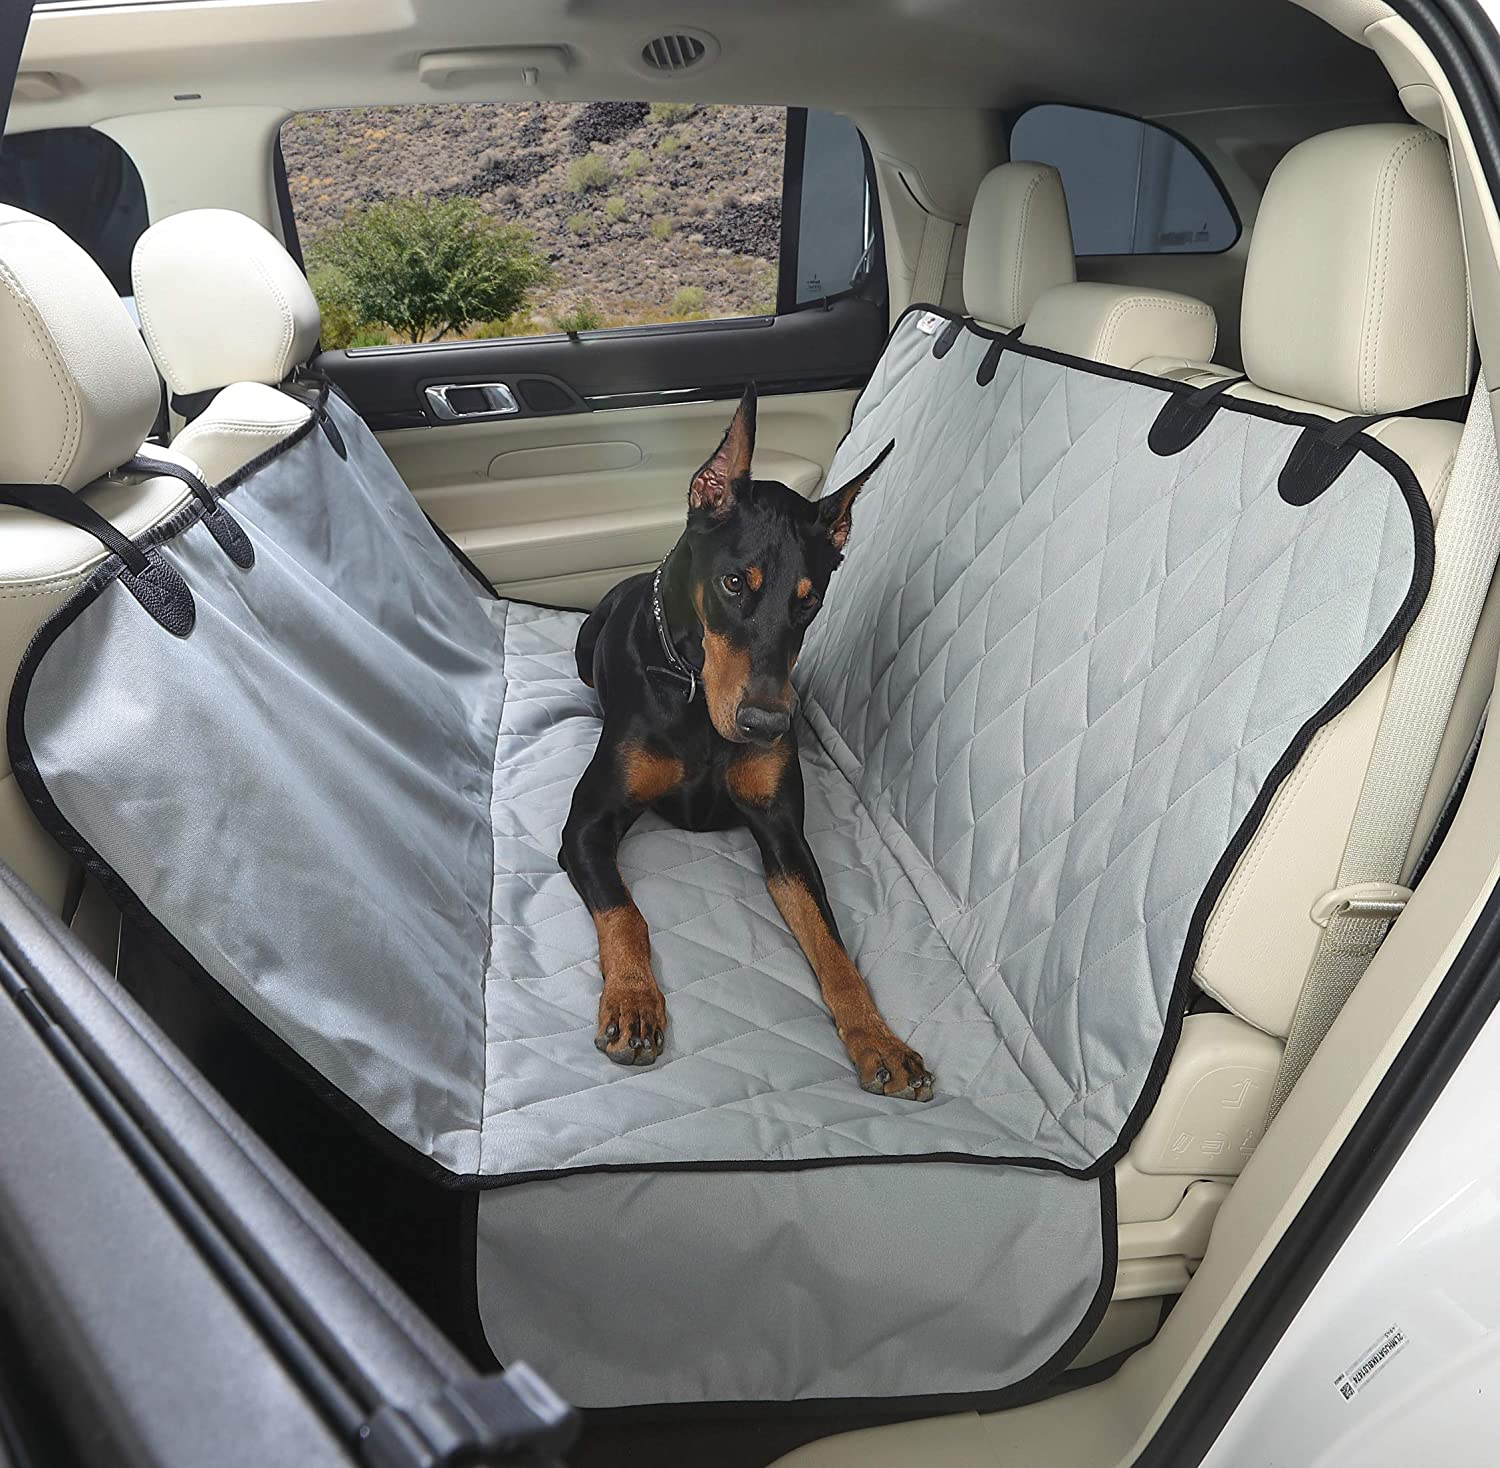 4Knines Dog Seat Cover with Hammock for Cars, Trucks and SUVs - Heavy Duty, Non Slip, Waterproof - USA Based